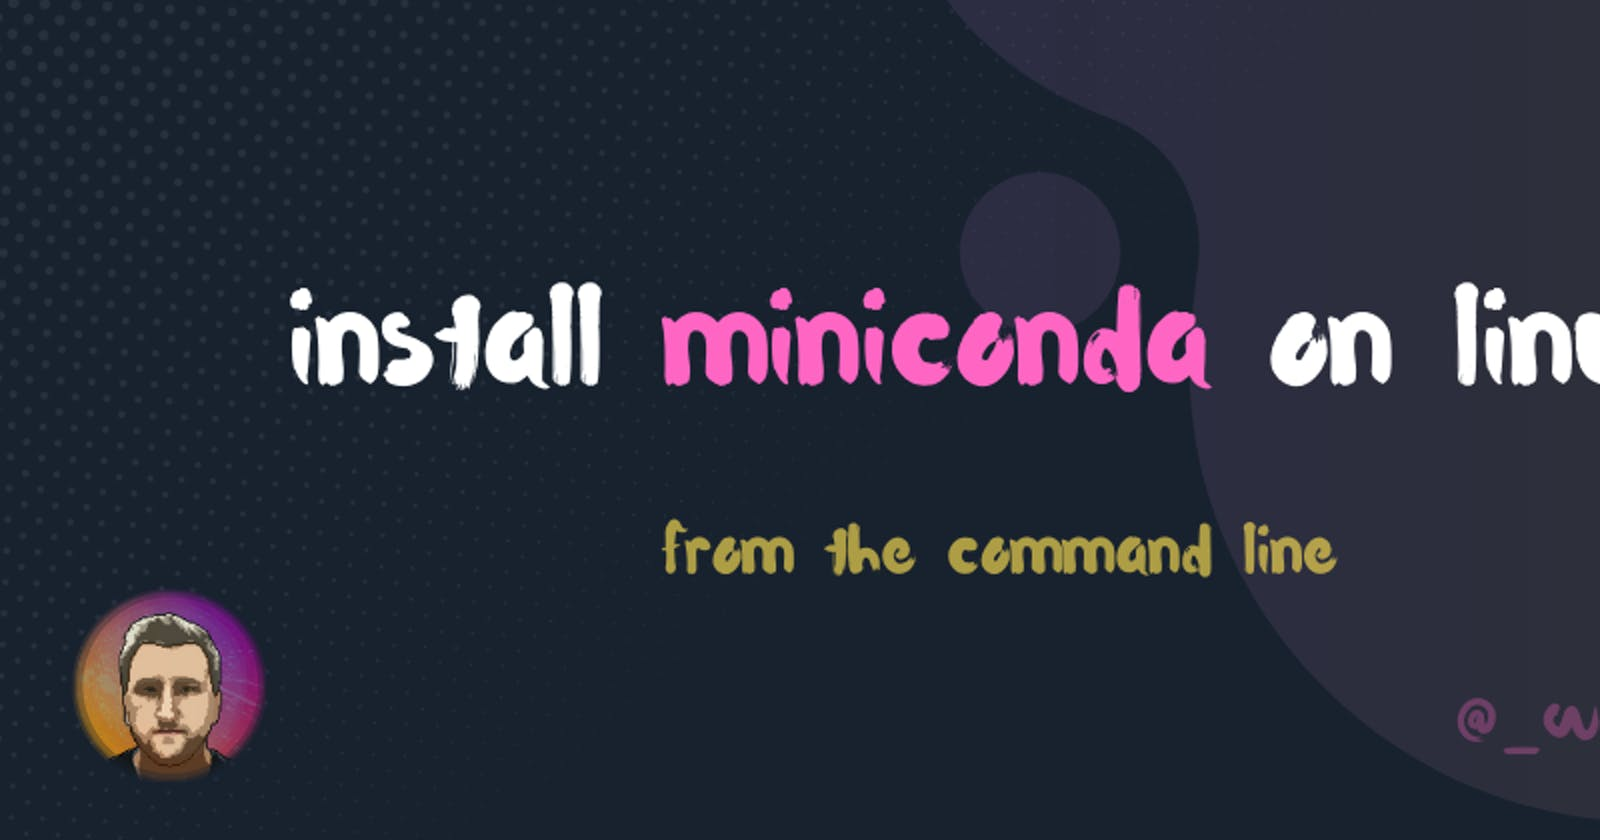 How to Install miniconda on linux (from the command line only)